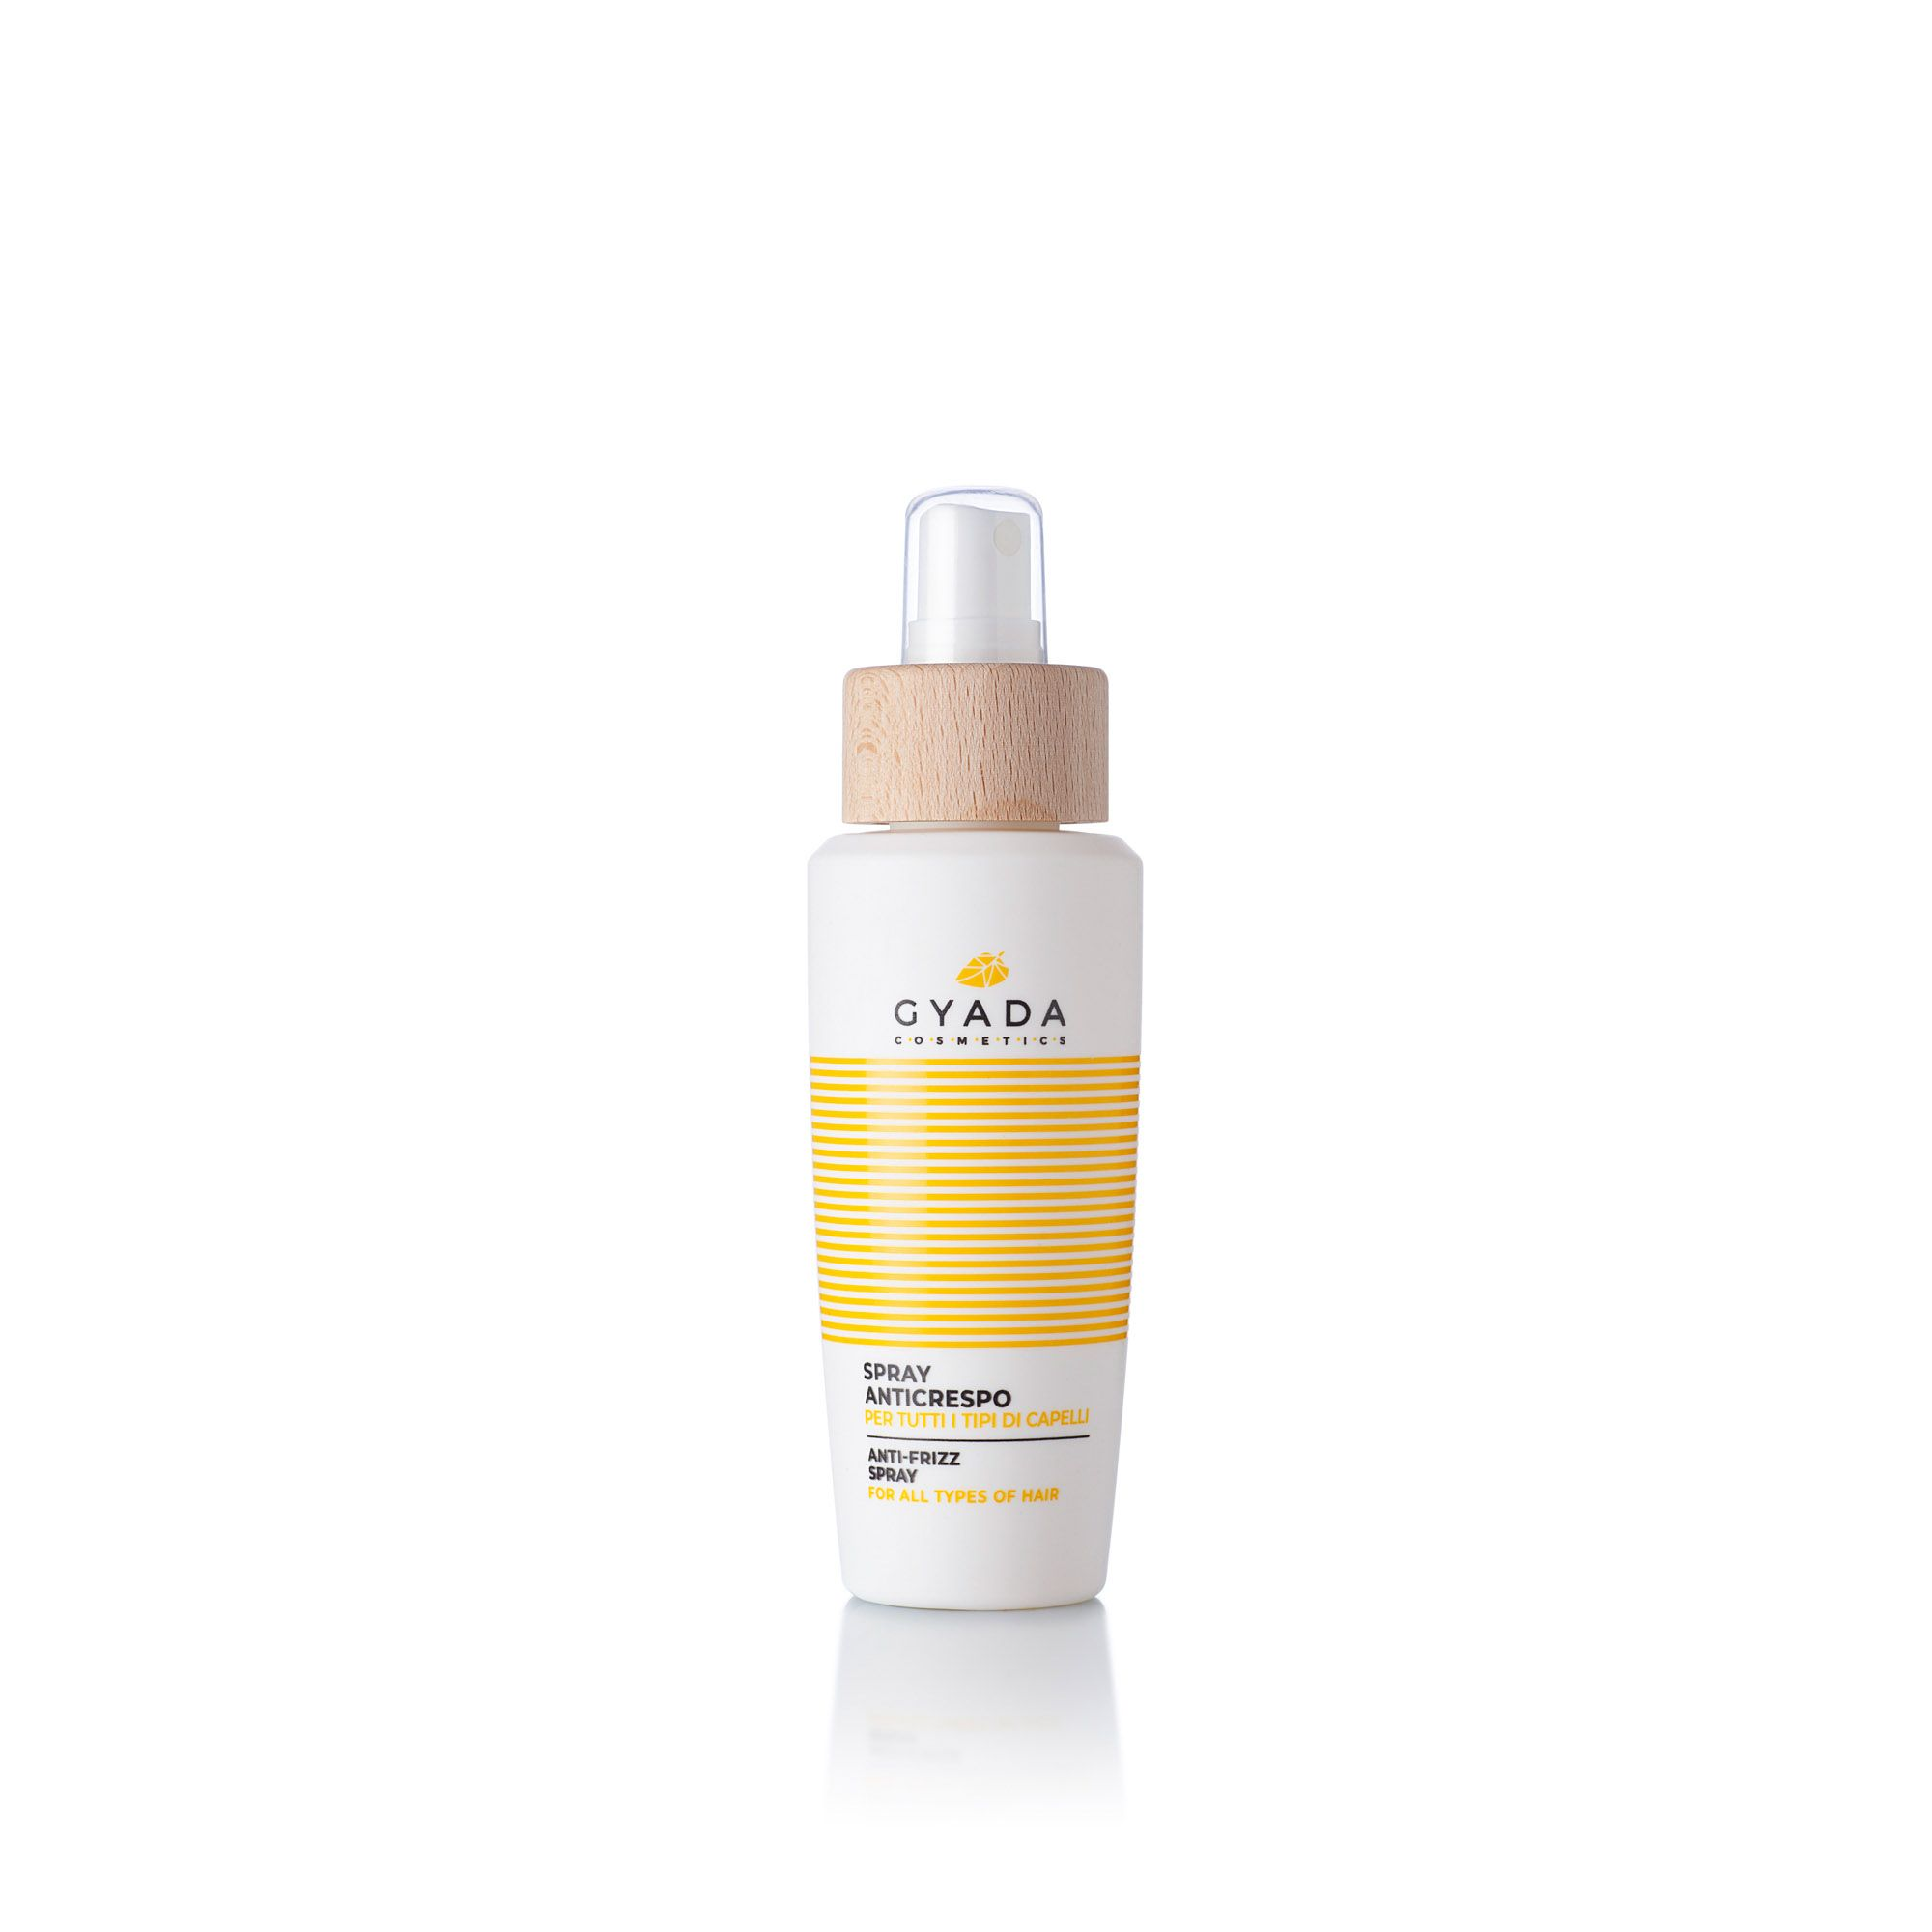 GYADA COSMETICS Spray Anticrespo 125ml